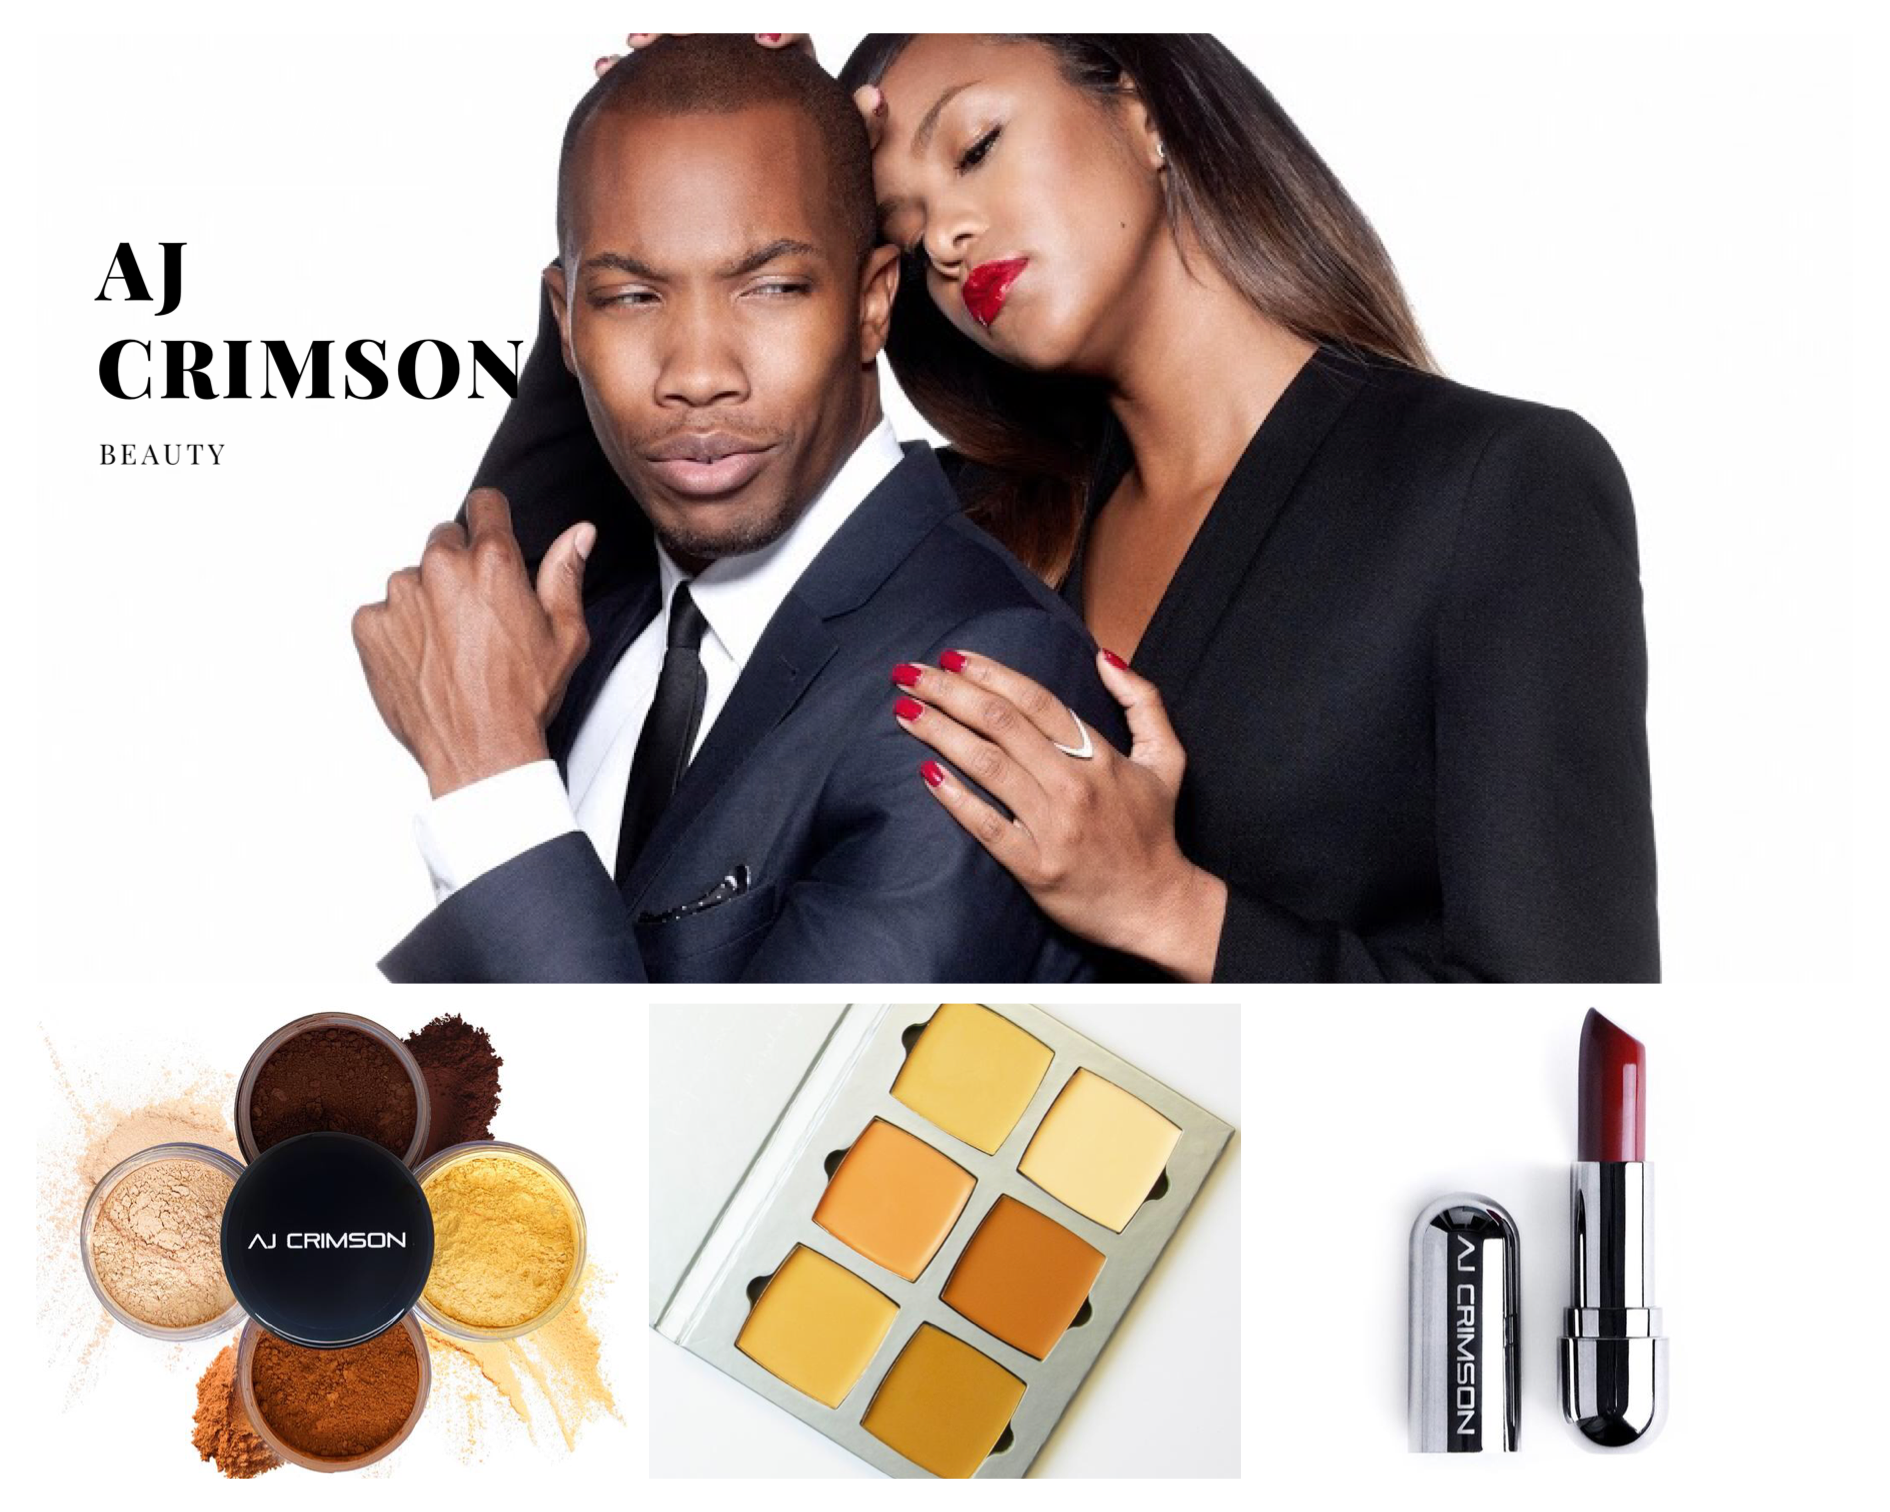 AJ CRIMSON BEAUTY favorite things